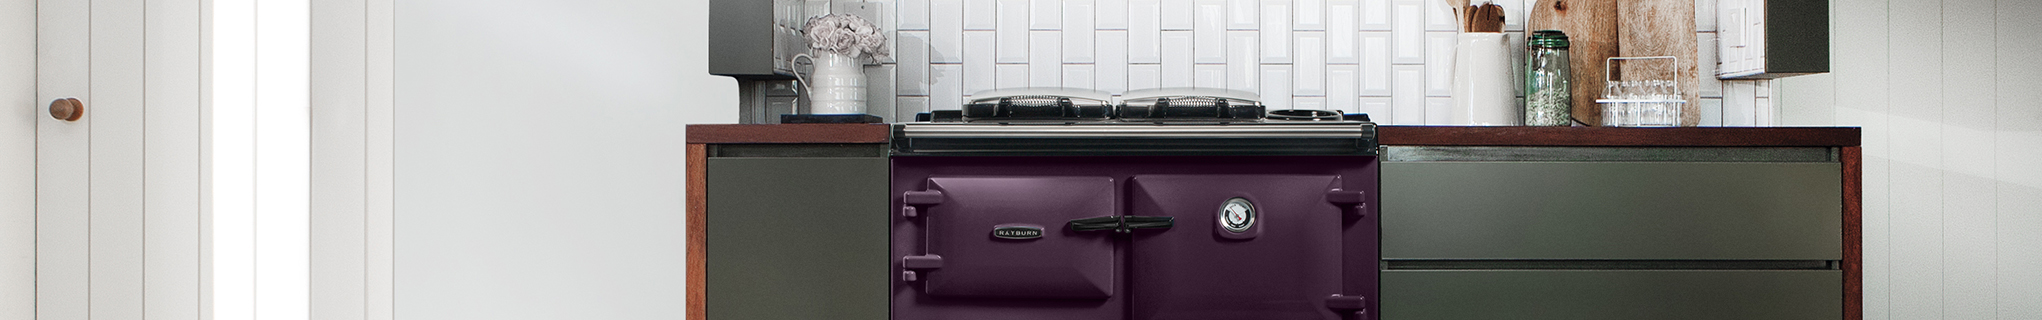 Rayburn buyer's guide